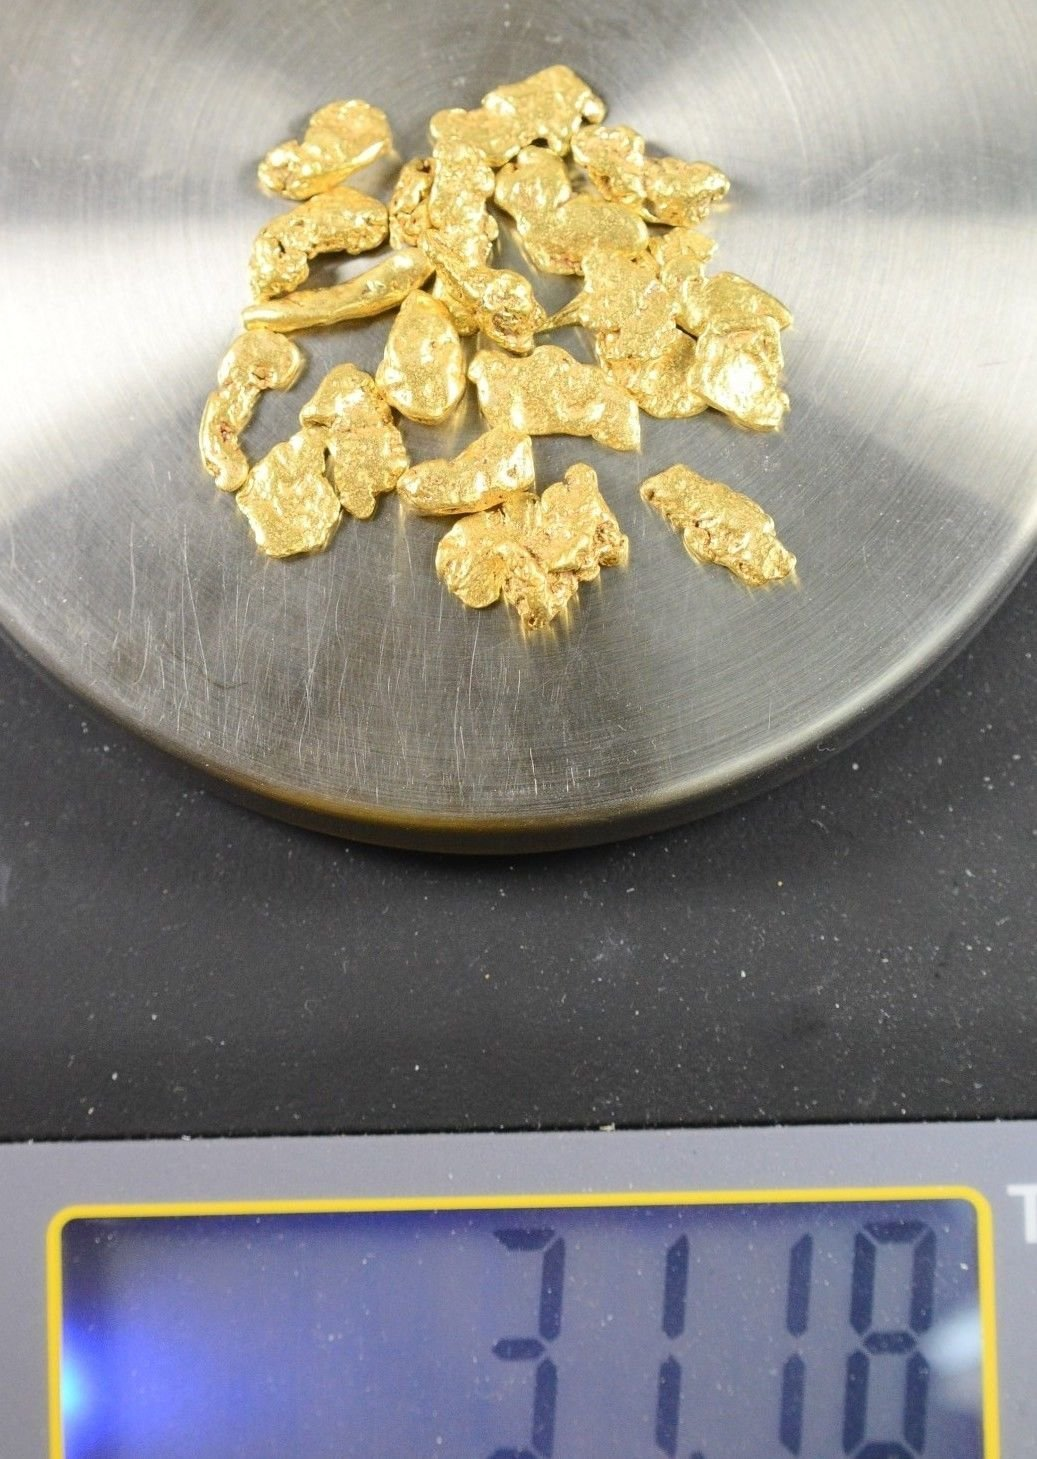 Alaskan-Yukon Bc Natural Gold Nugget #4 Mesh 5 Troy Ounce 155.5 Gram Alaskan Flake Nuggets